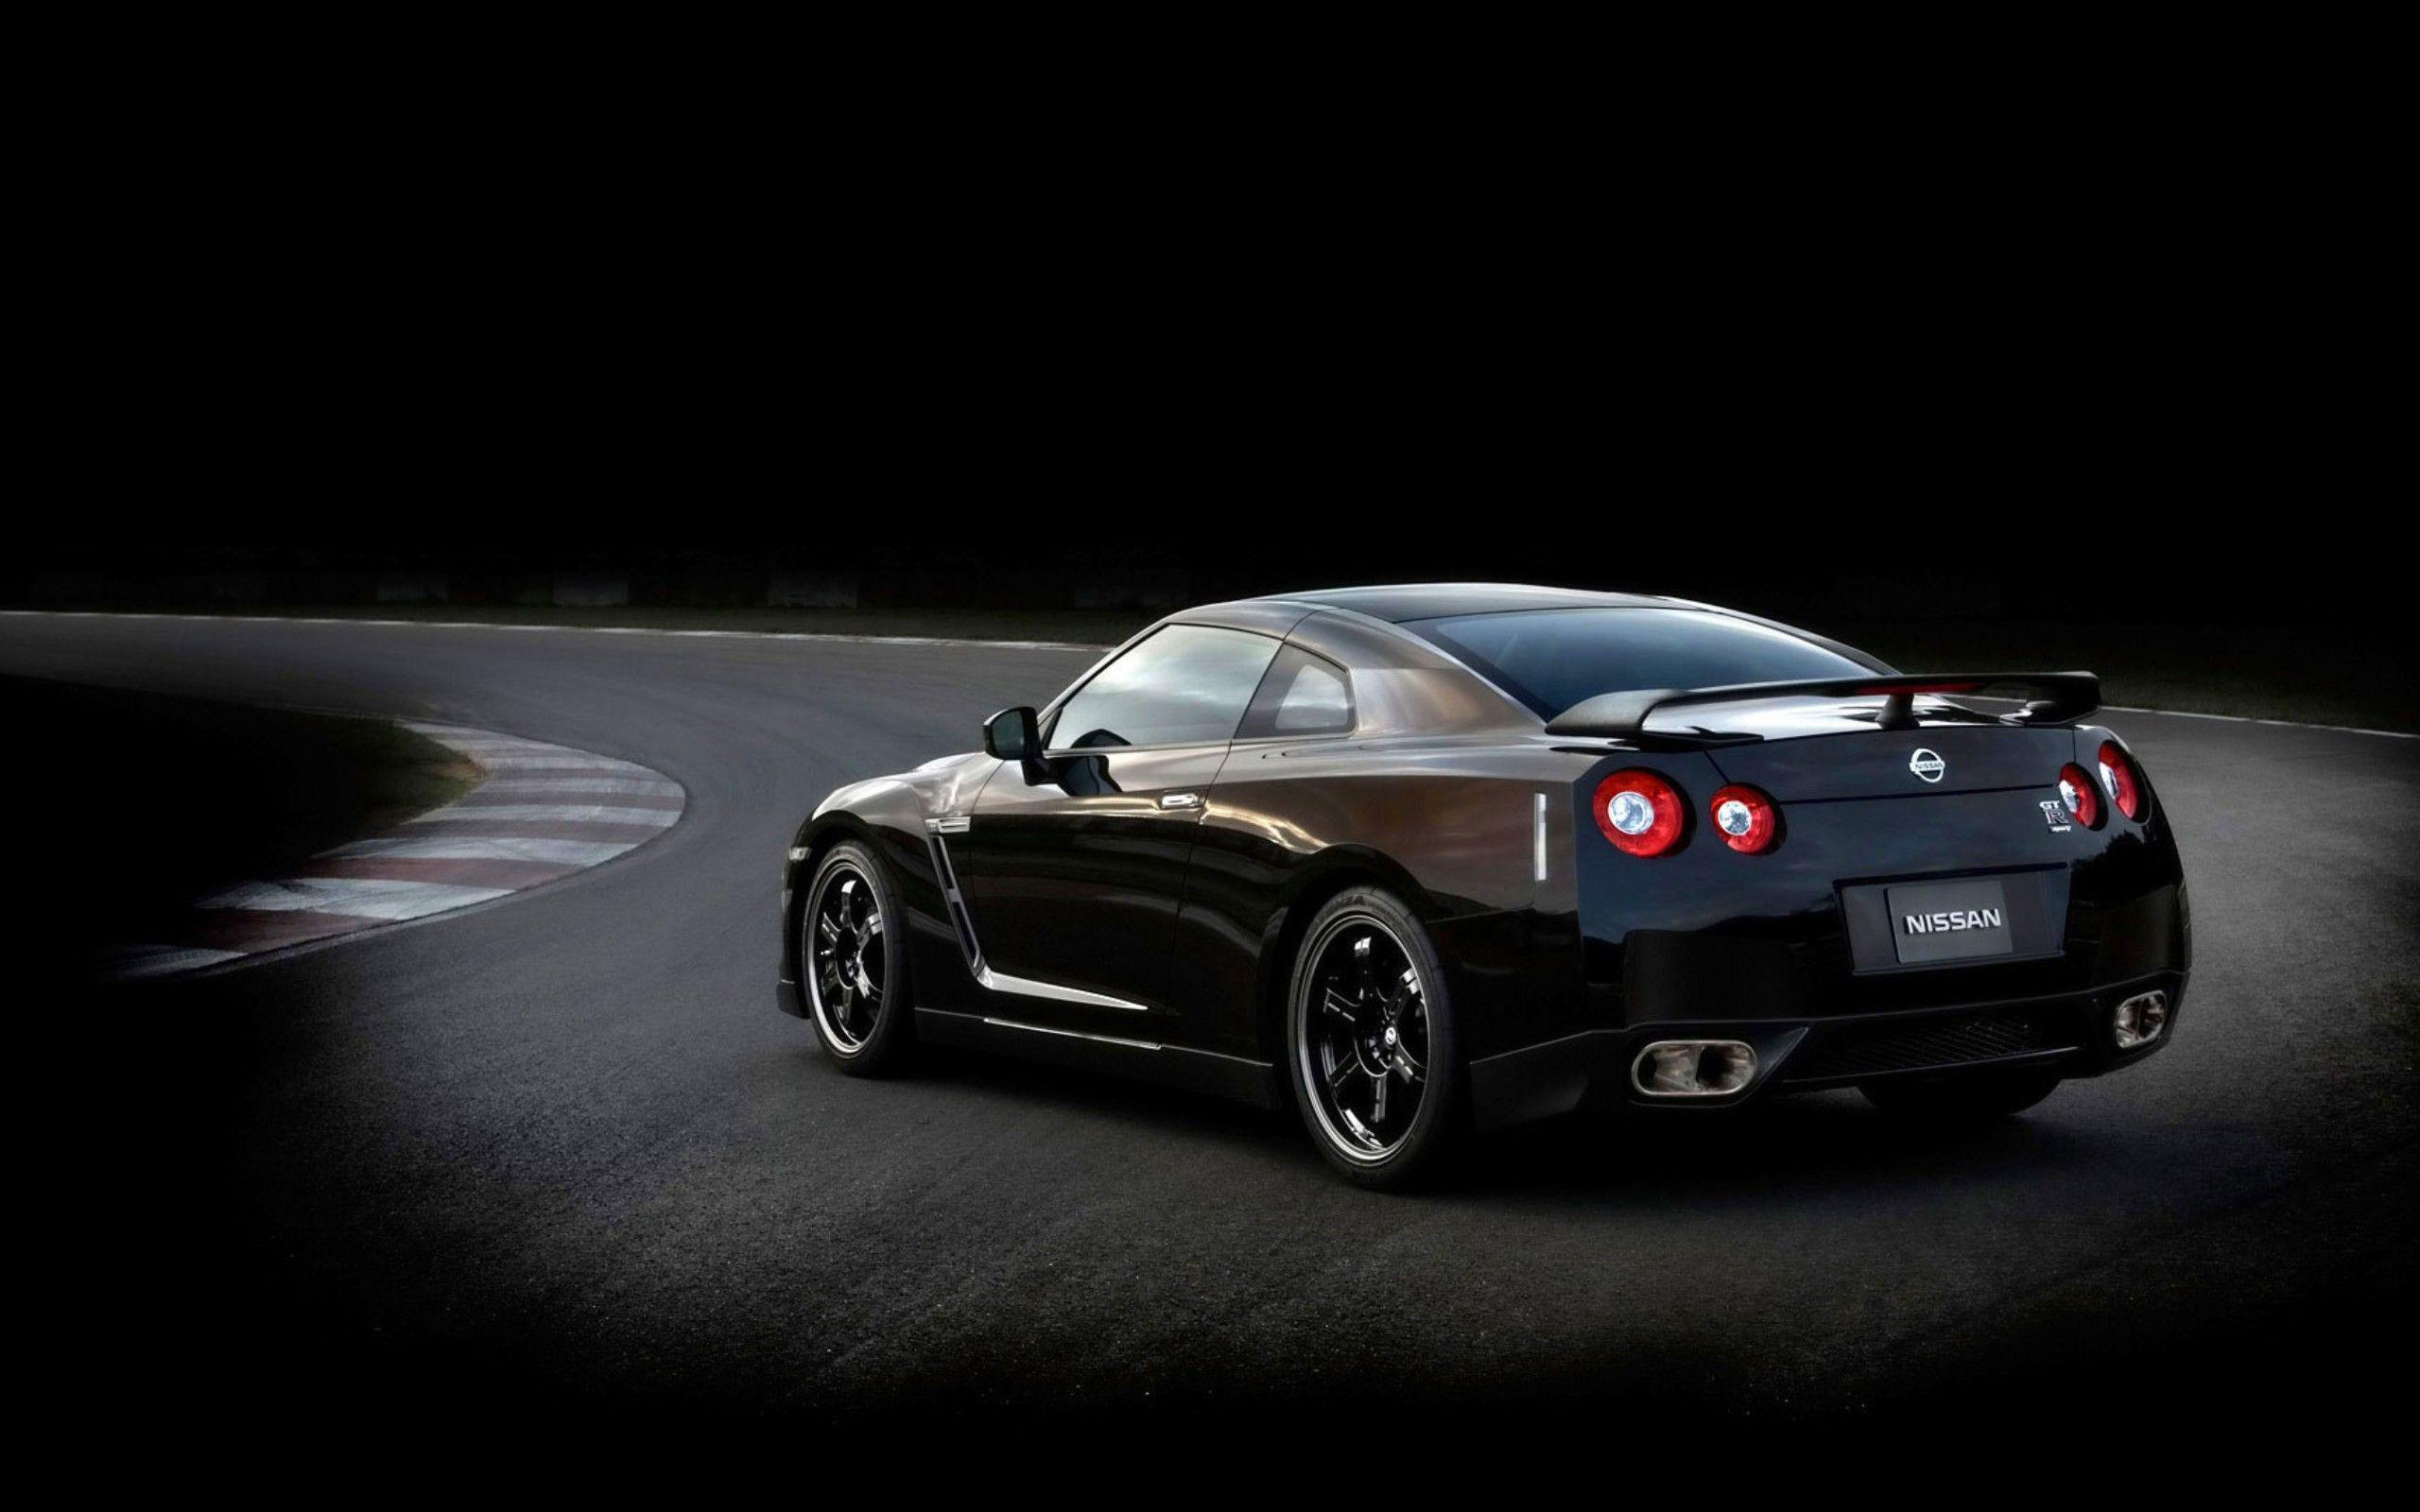 Nissan GT-R HD Wallpapers | TanukinoSippo.